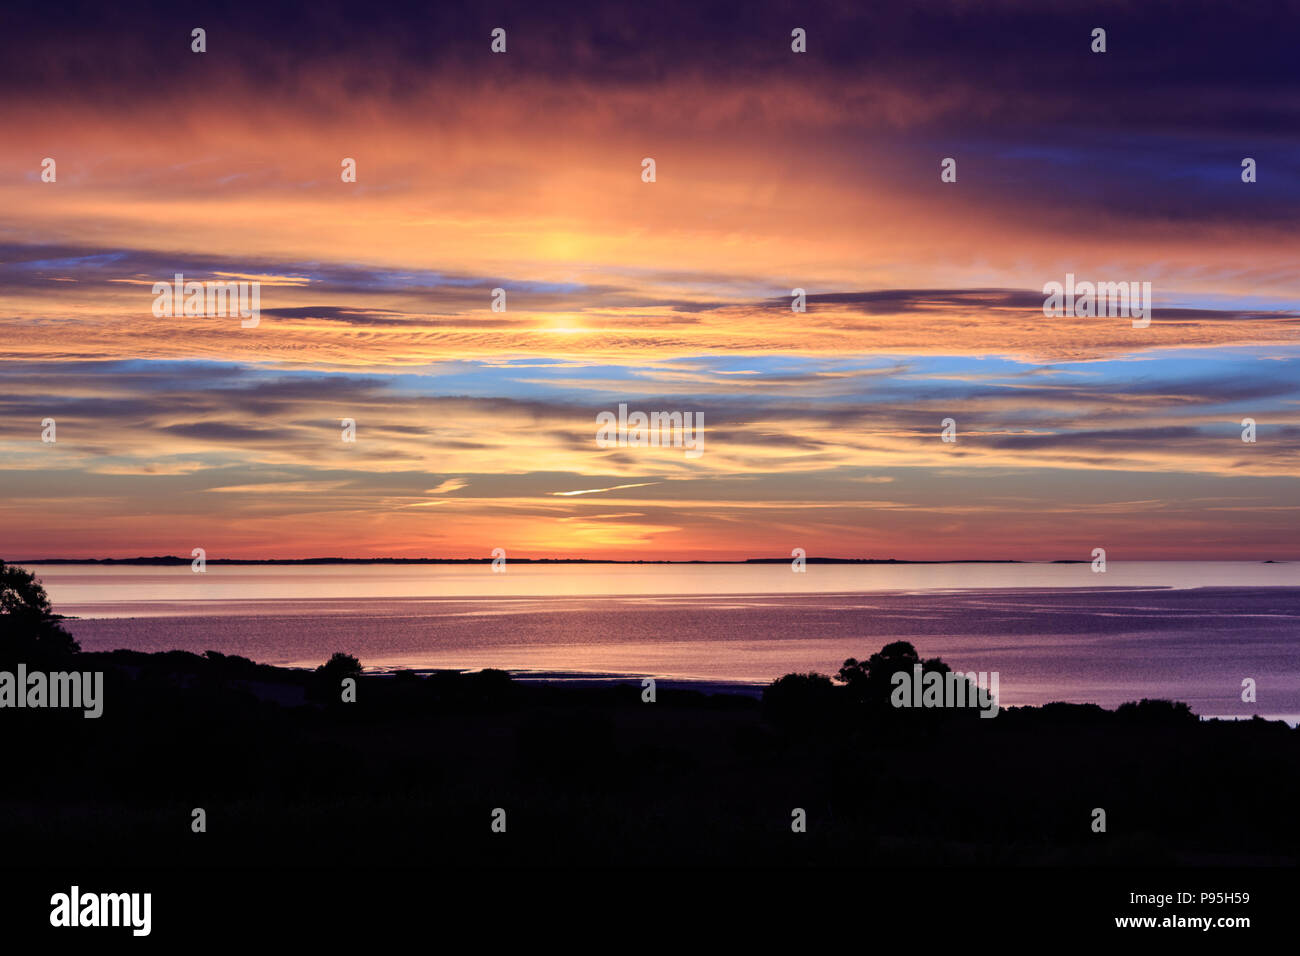 Summer sunset over Tralee Bay and the Maharees along the Wild Atlantic Way viewed from Camp on the Dingle Peninsula in County Kerry, Ireland - Stock Image